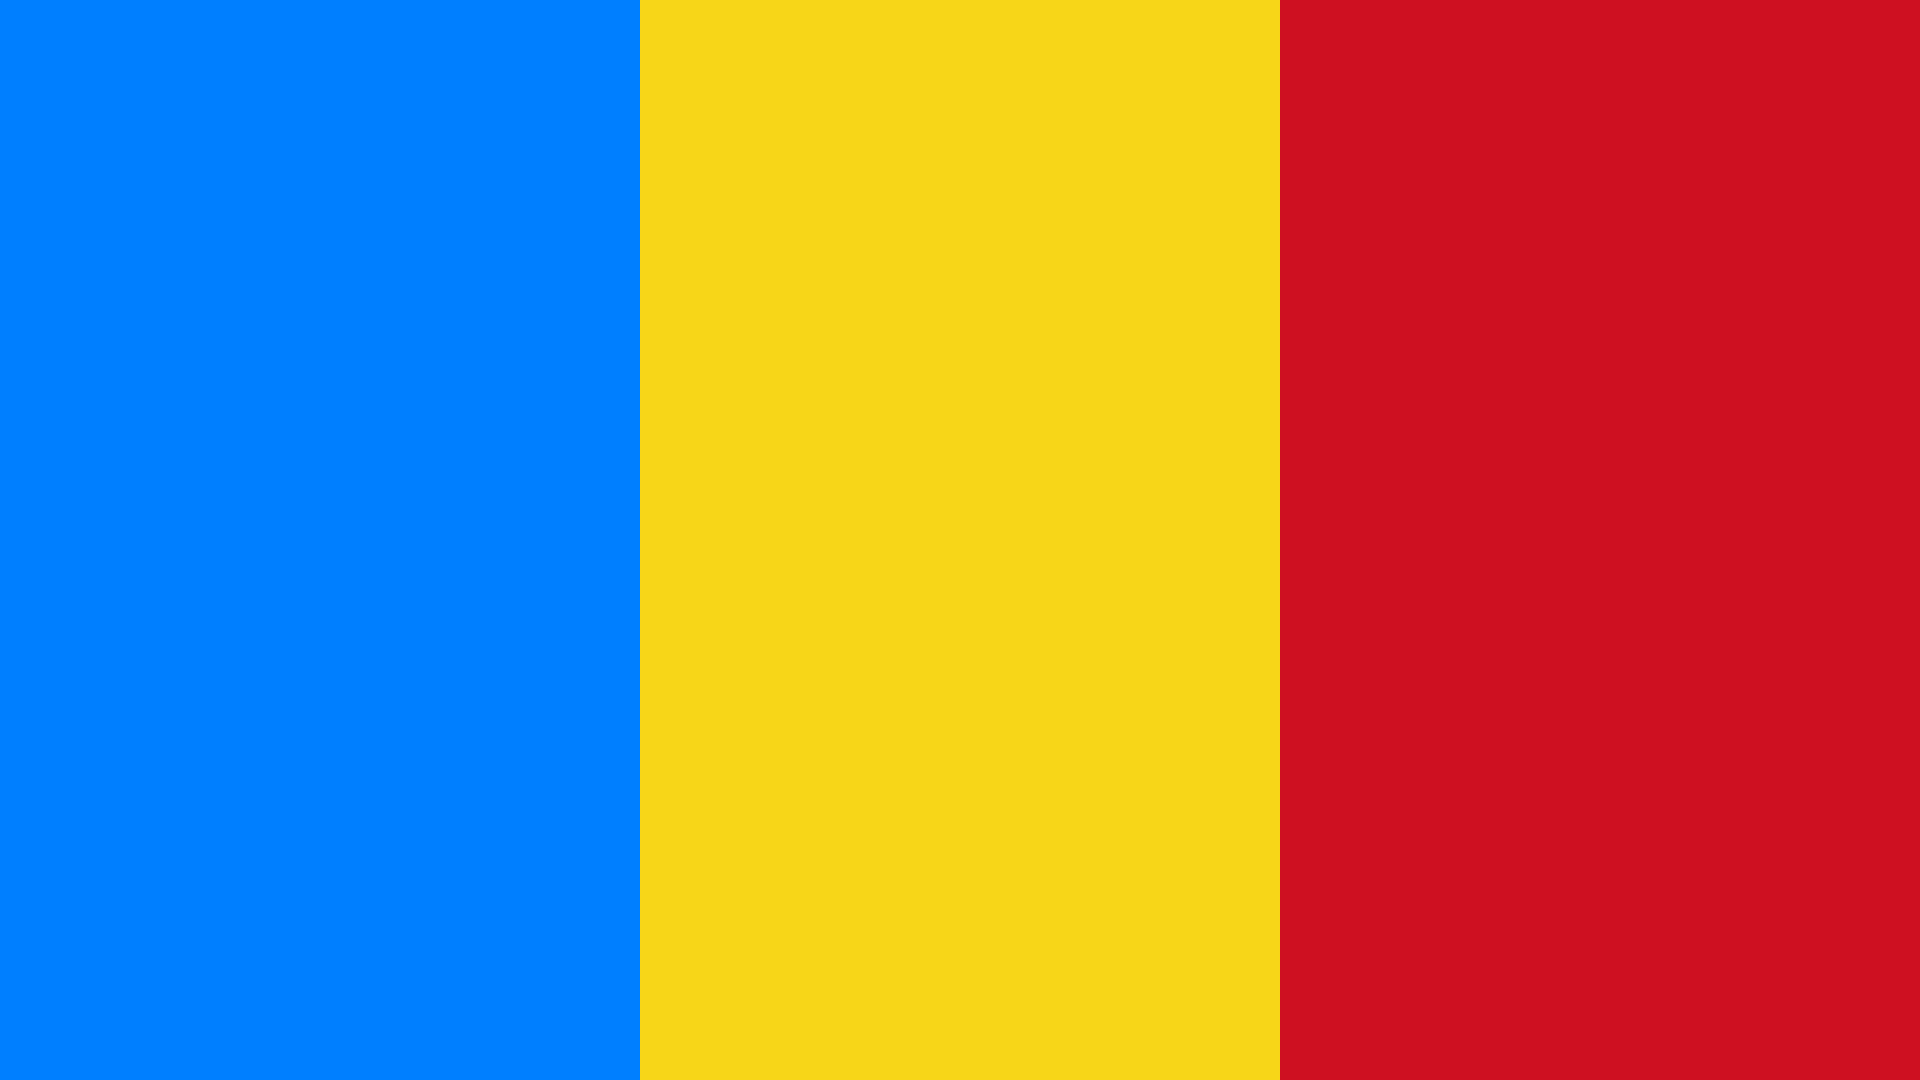 Democratic Republic Of The Congo Flag Color Palette